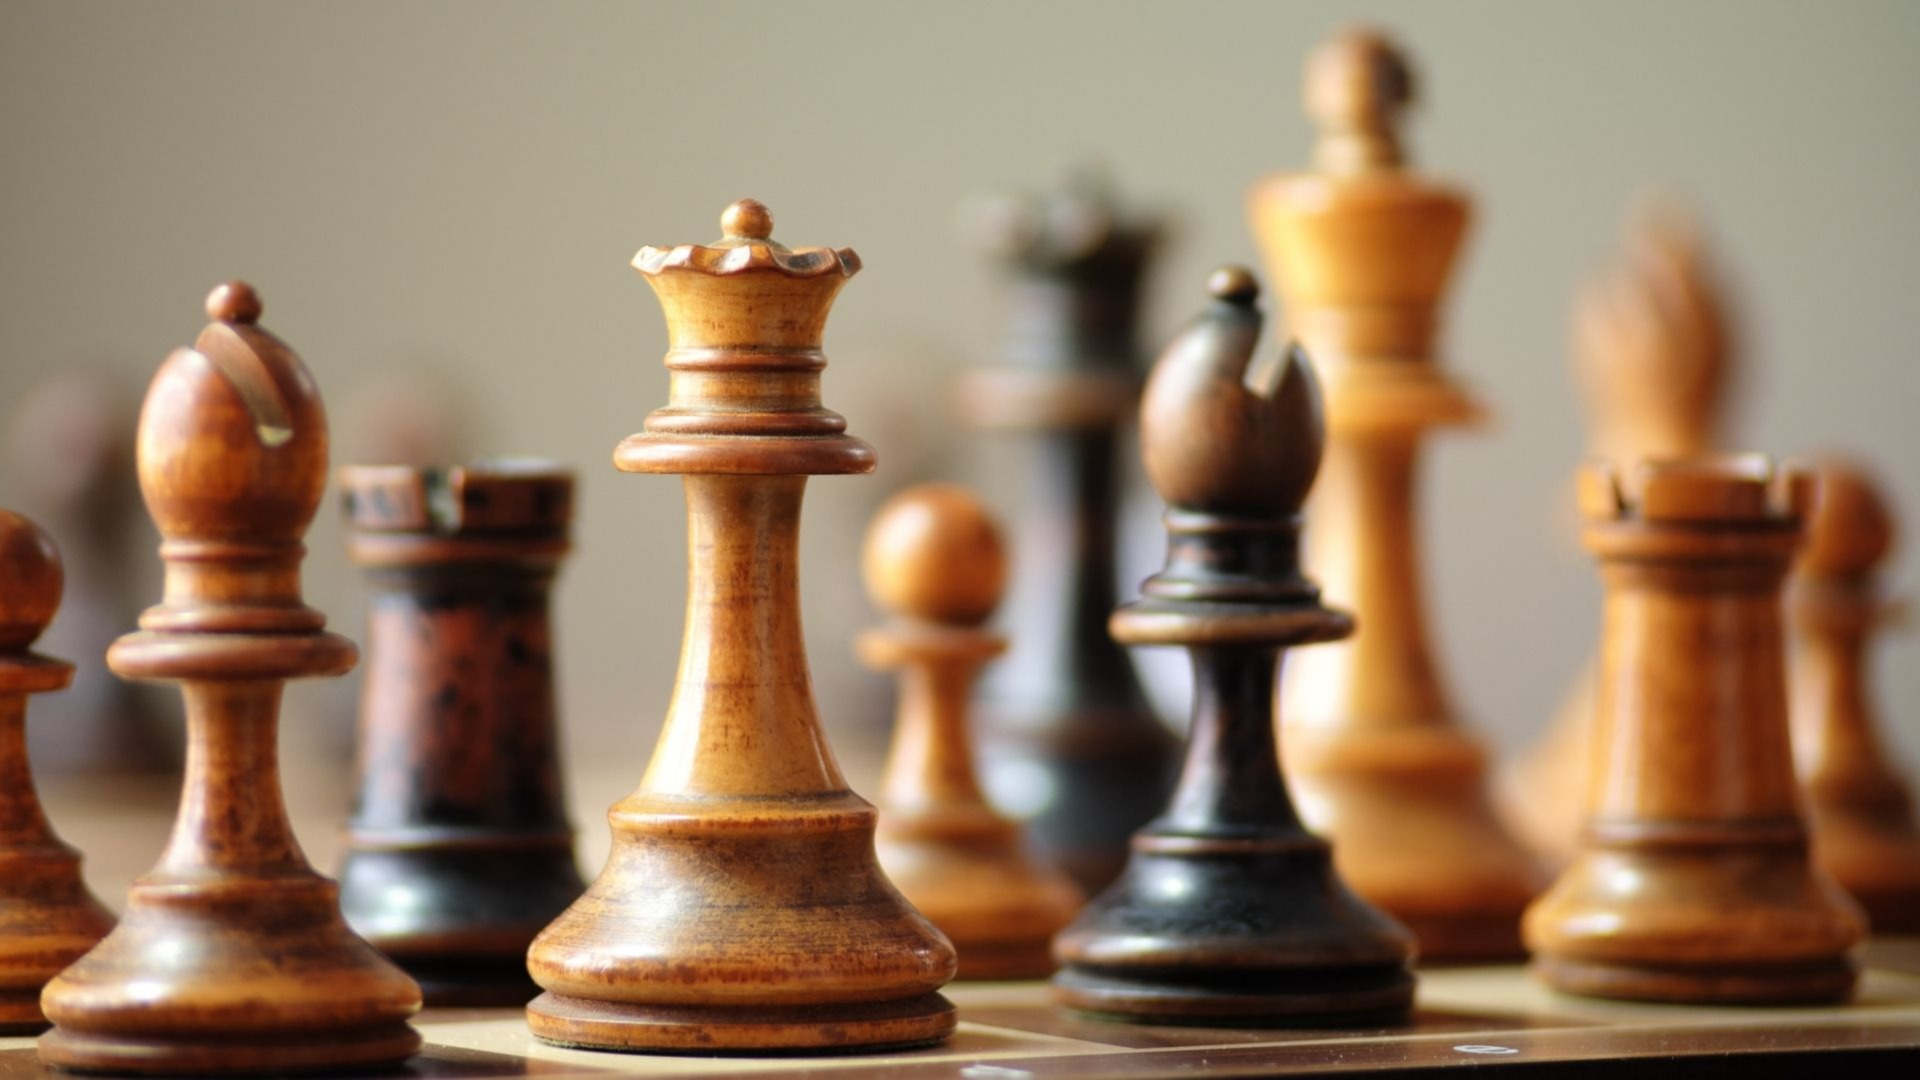 Building a Community for Chess